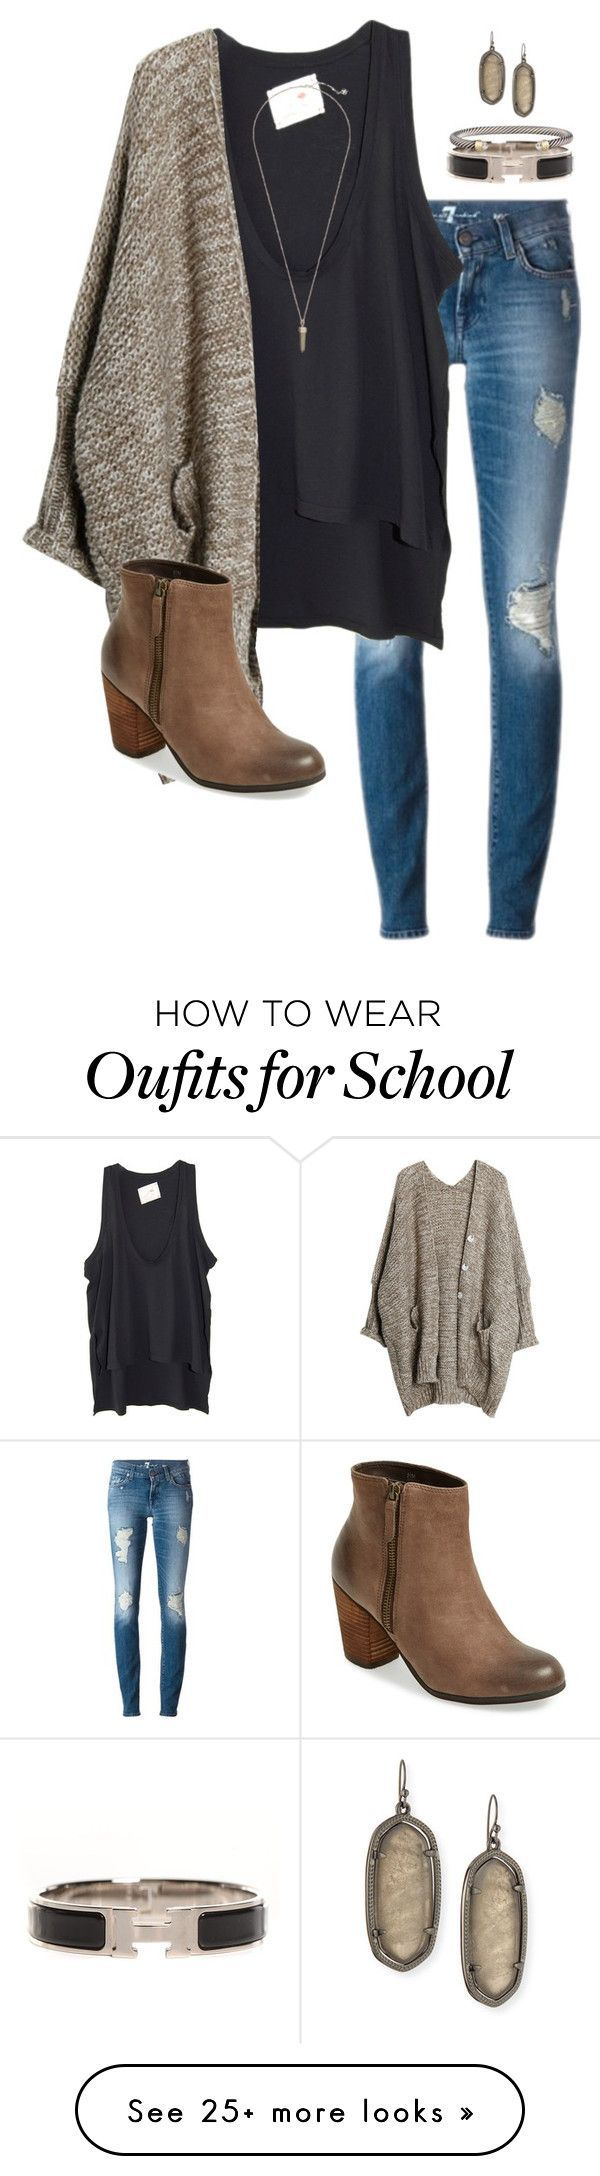 """I LUV my school's spirit sm"" by southernprepxoxo on Polyvore featuring moda, Da..."